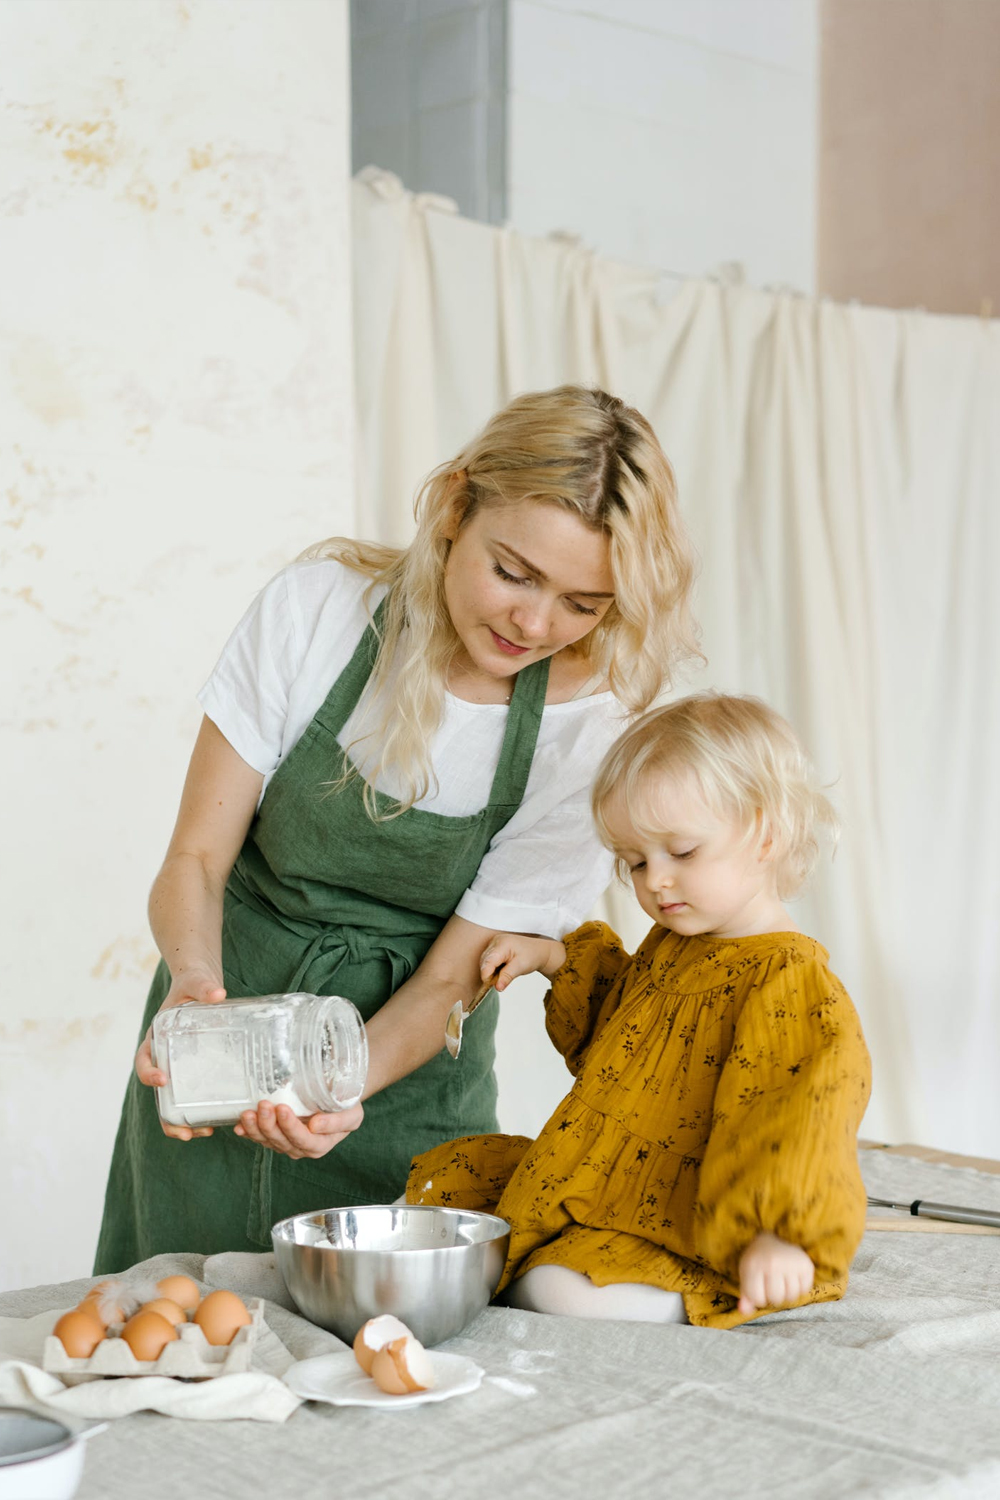 mother and her daugther wearing cottagecore inspired looks are cooking in the kitchen.